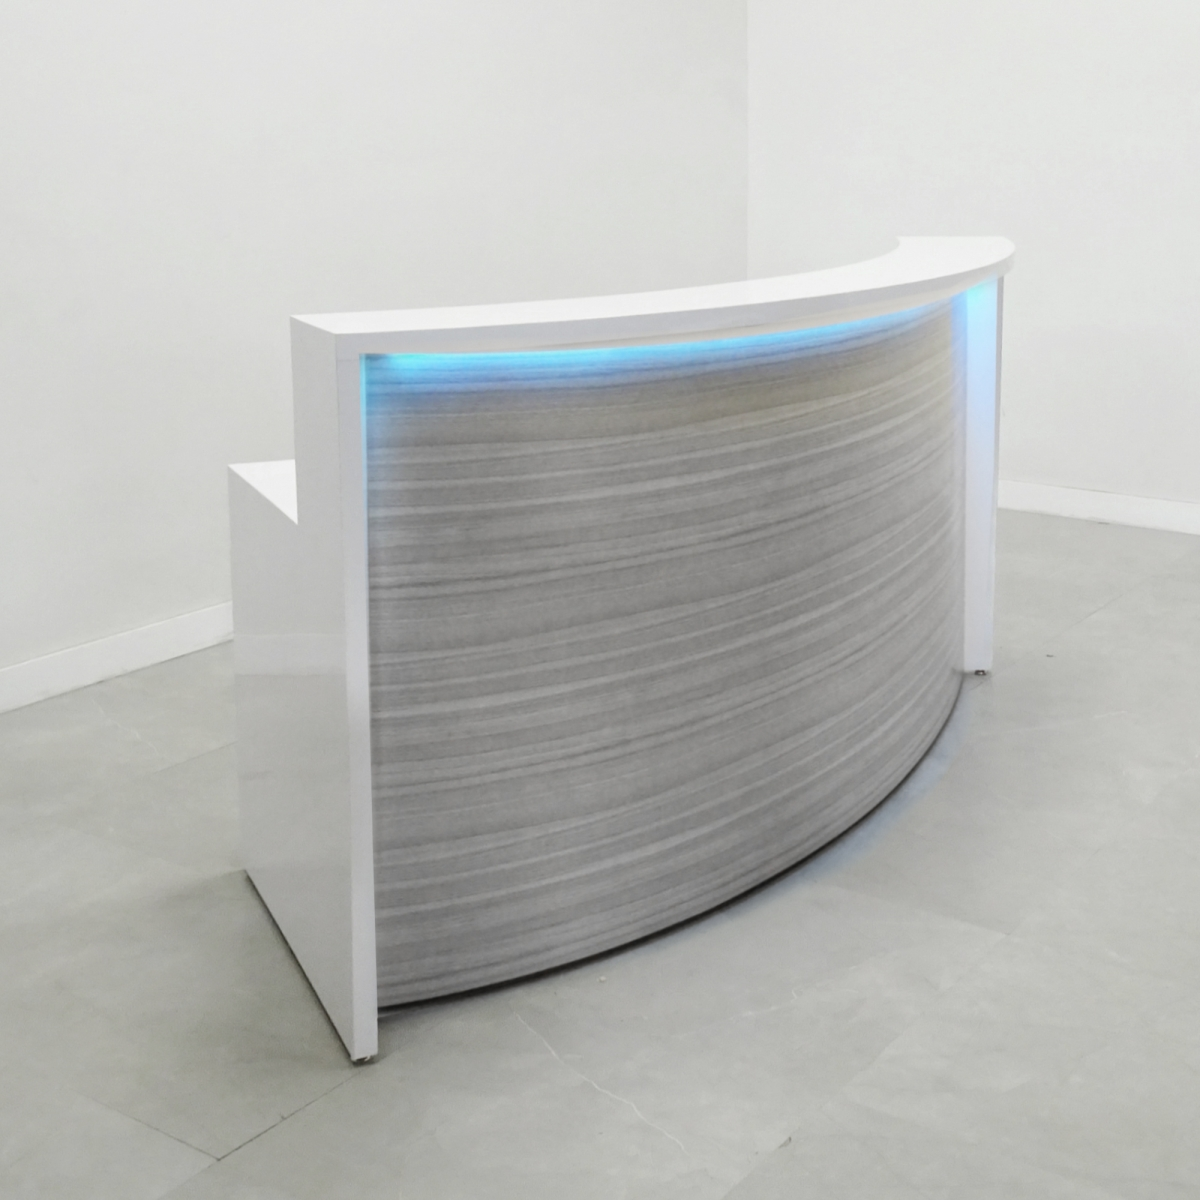 84 In. Seattle Curved Reception Desk - Stock #40